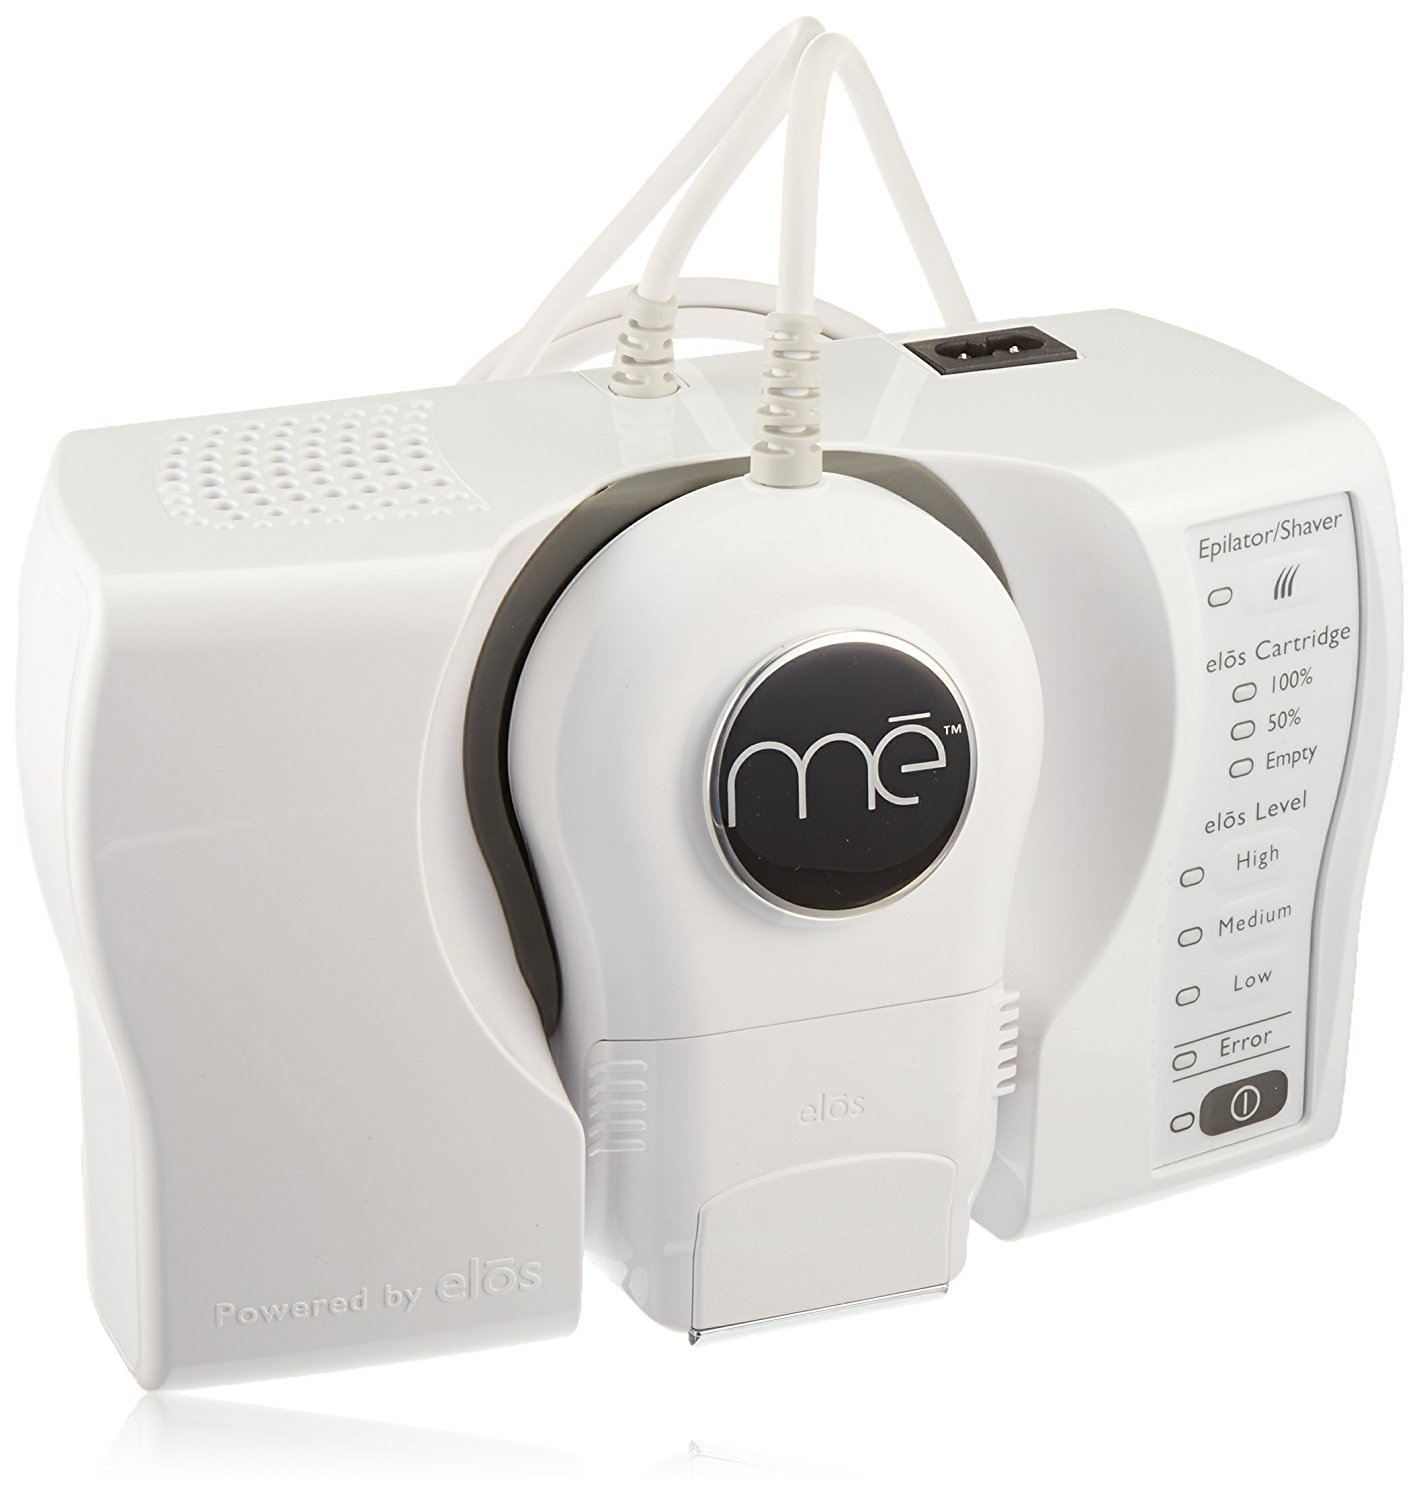 mē Smooth Permanent Hair Reduction Device with FDA Cleared elōs Technology - With Bonus 50K Pulses Cartridge (Total 100,000 Pulses)